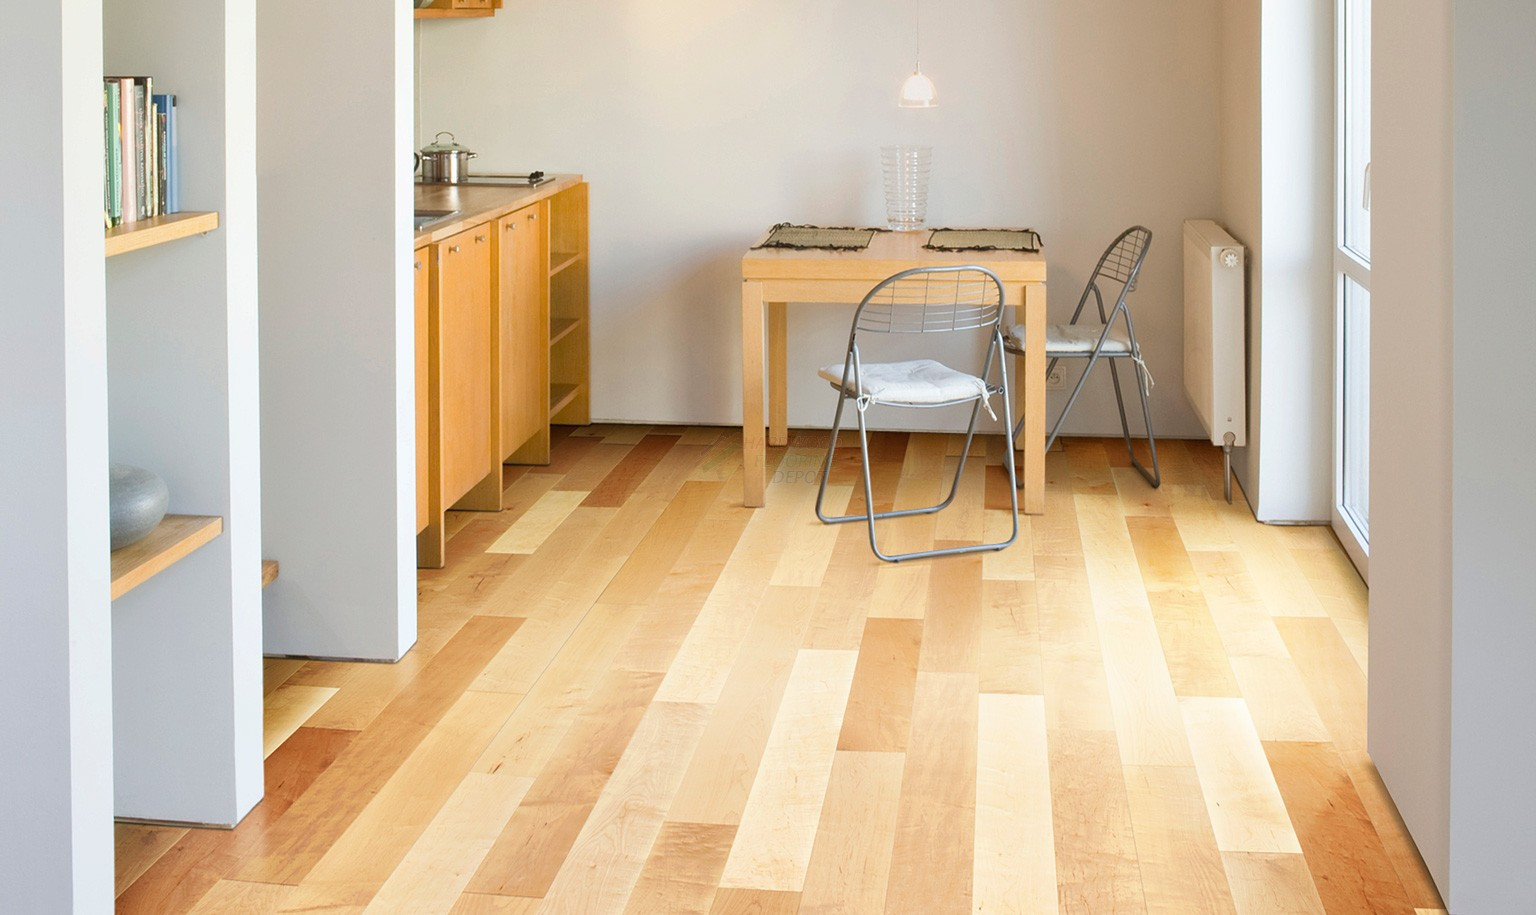 hardwood flooring depot research drive irvine ca of urban floor maple natural smooth series ex mn305 5 inch wide with urban floor maple natural smooth series ex mn305